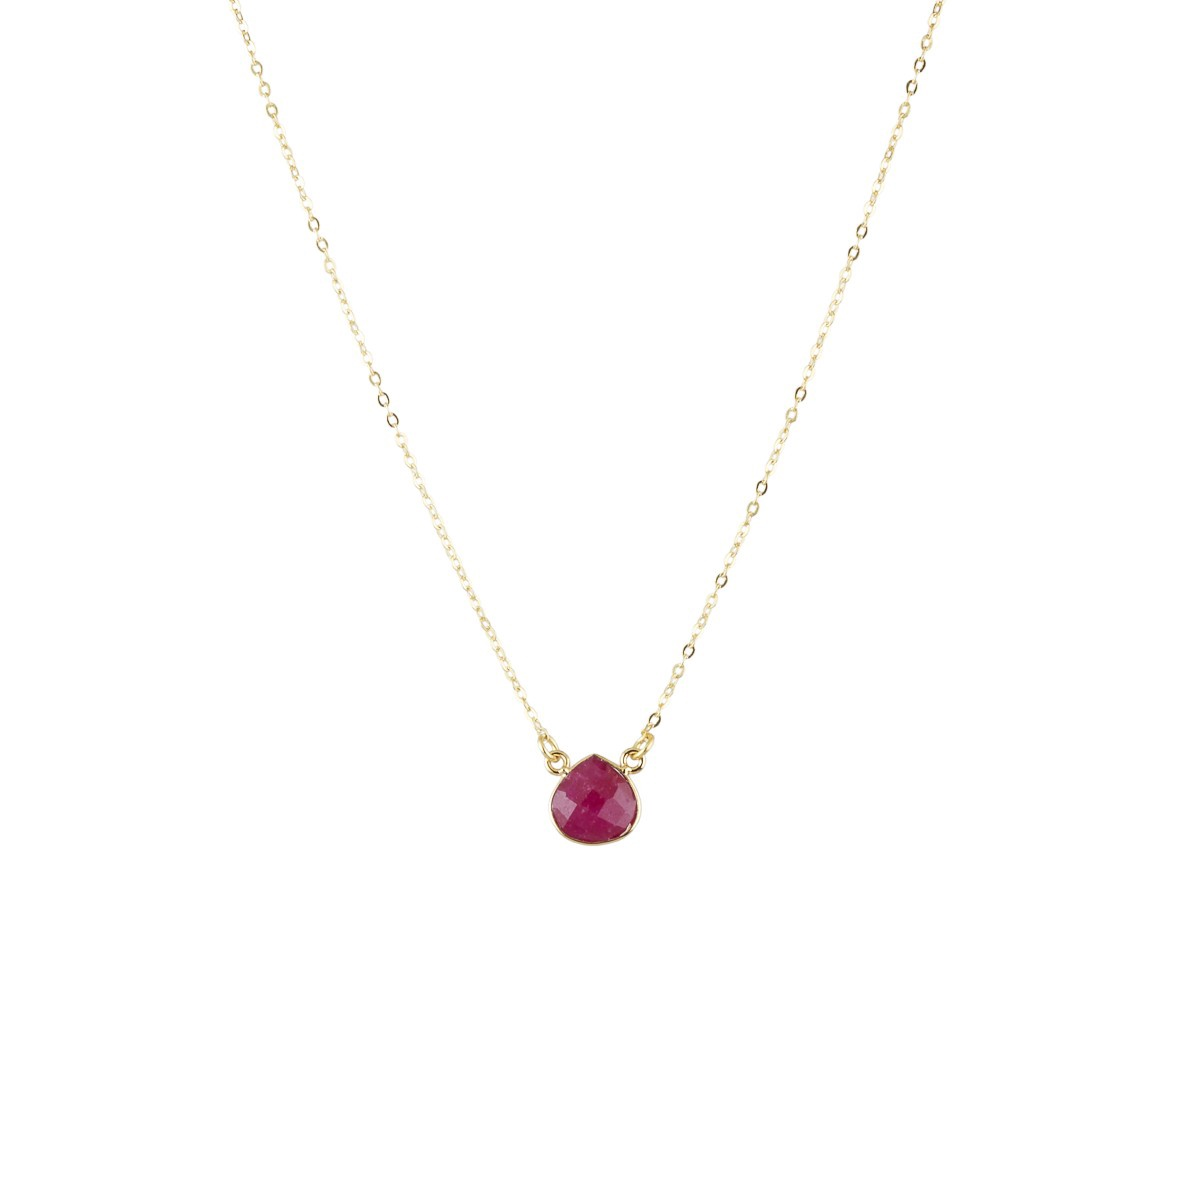 Teardrop pendant in Berry agate by Ashiana